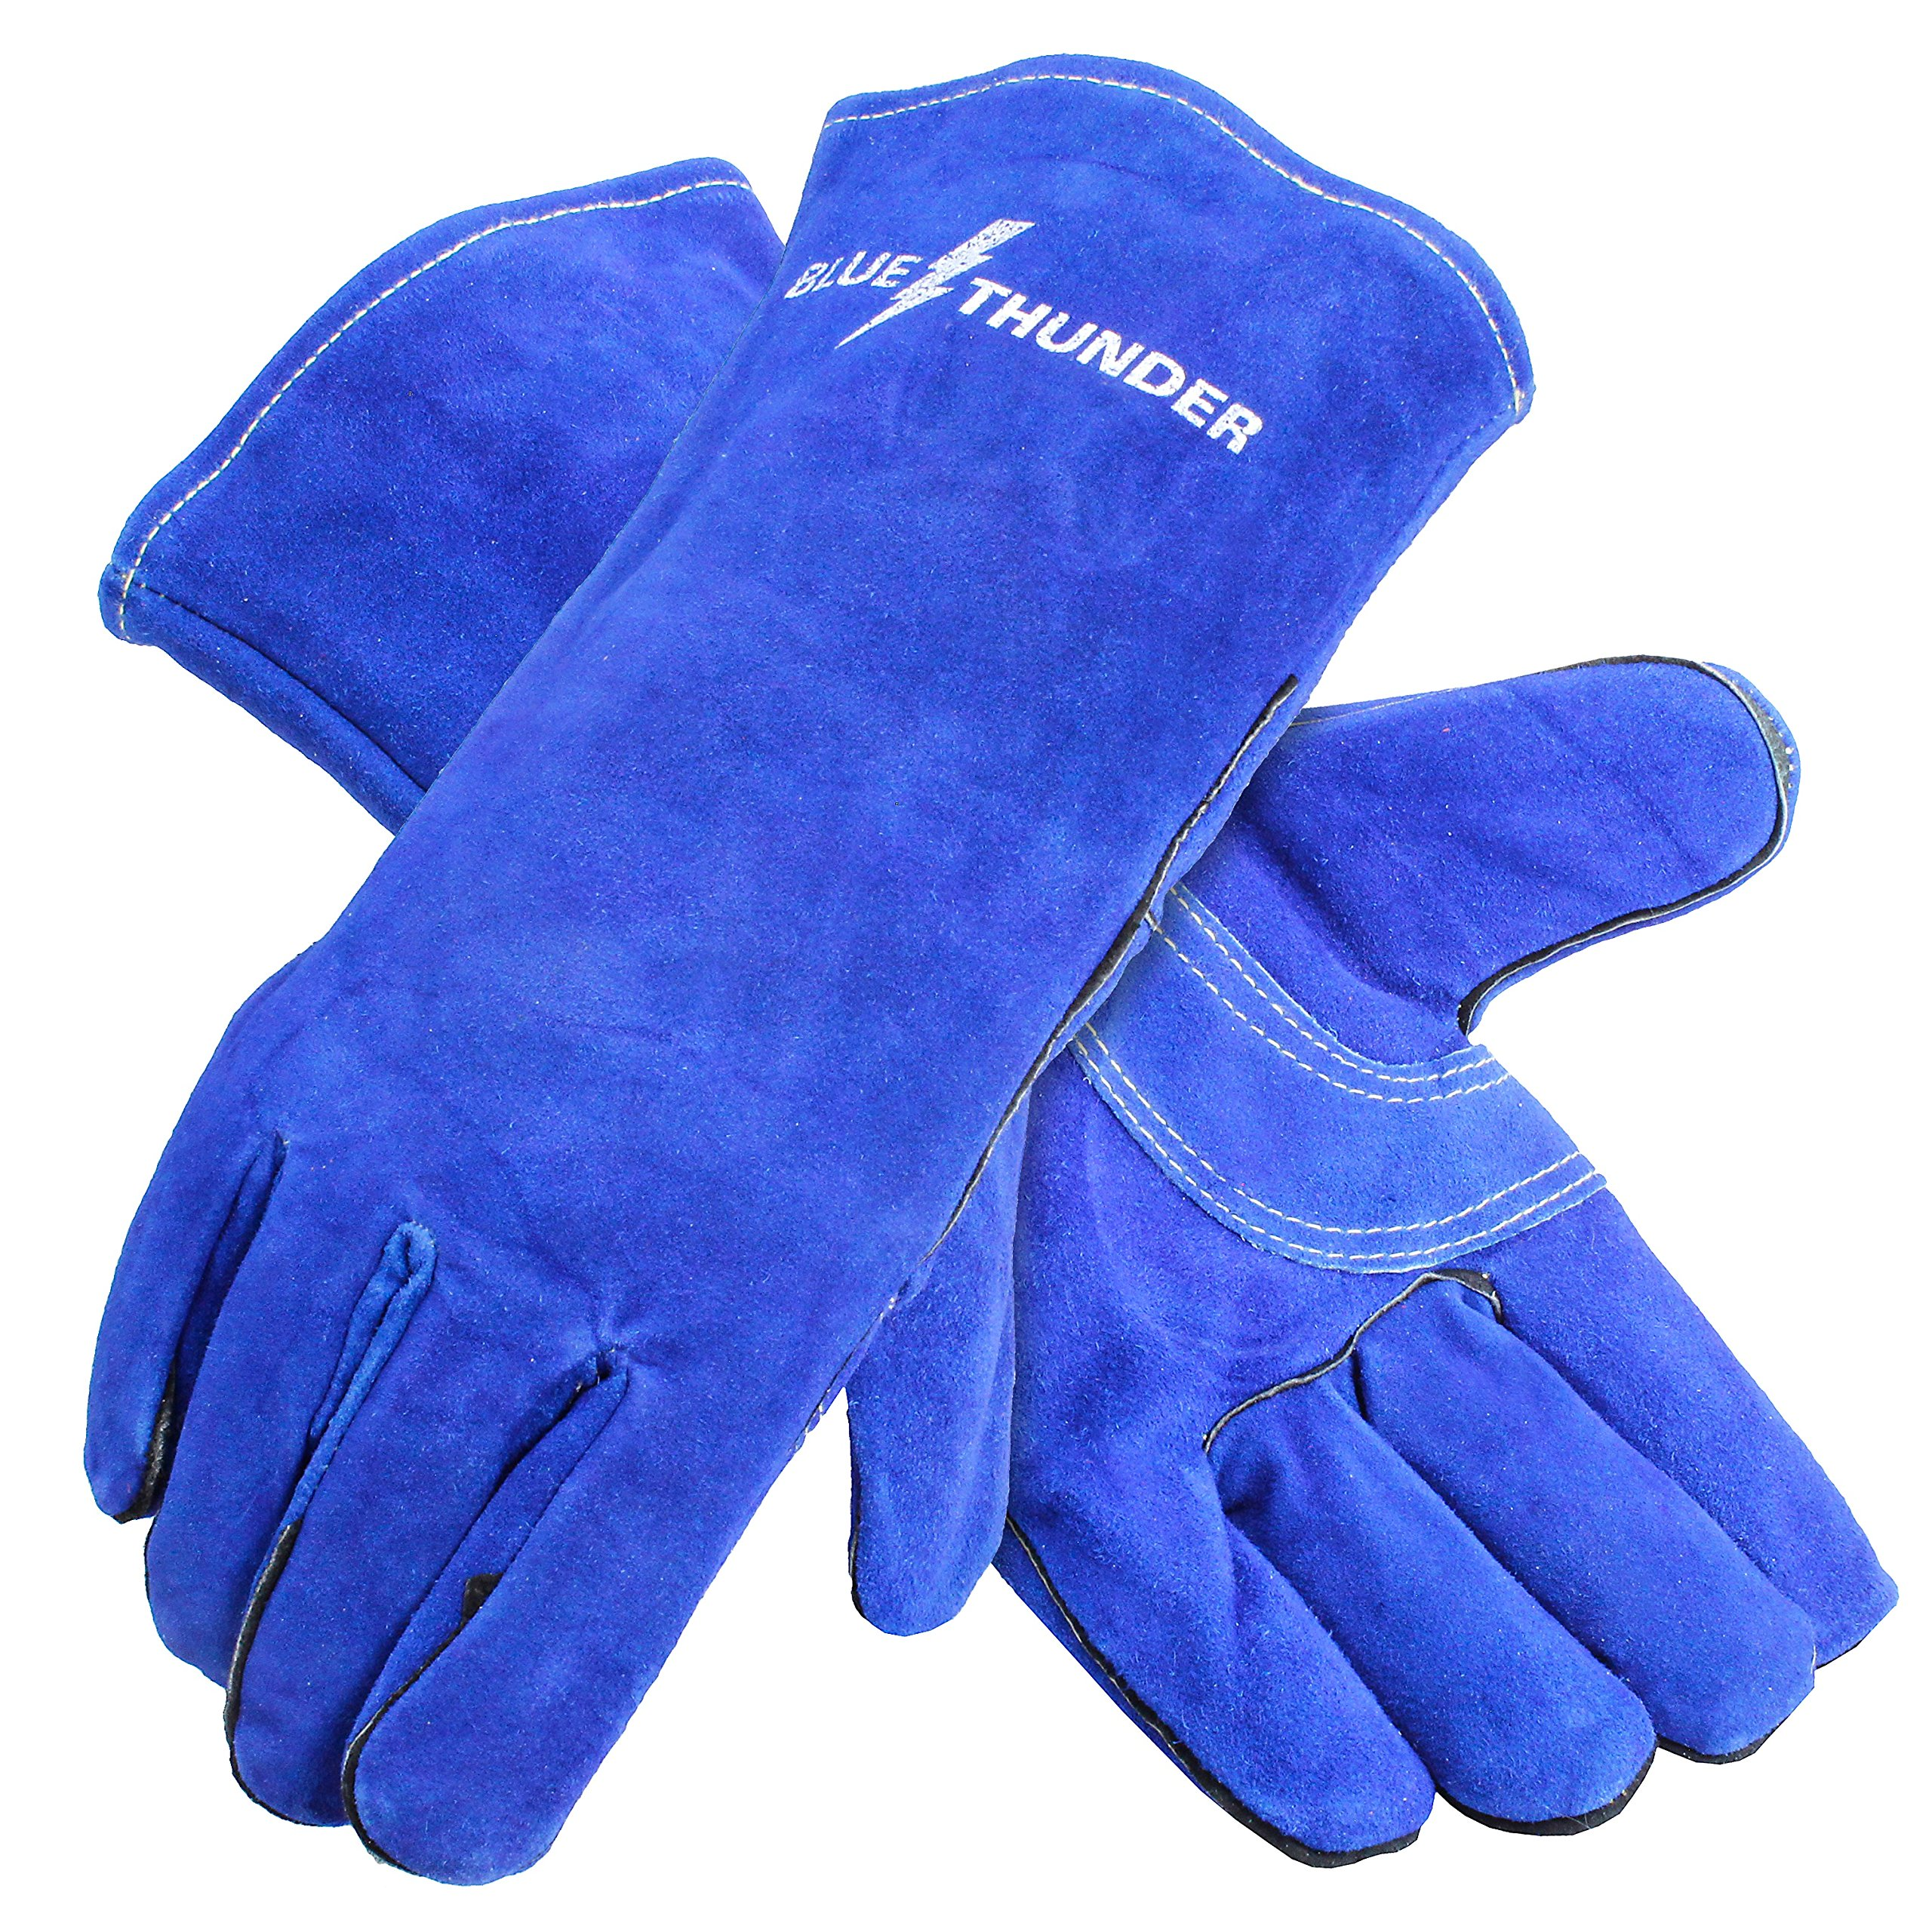 Galeton 2882 Blue Thunder Premium Leather Welders Gloves, Fully Lined, Medium Heat Protection, Large, Blue, (Pack of 12)